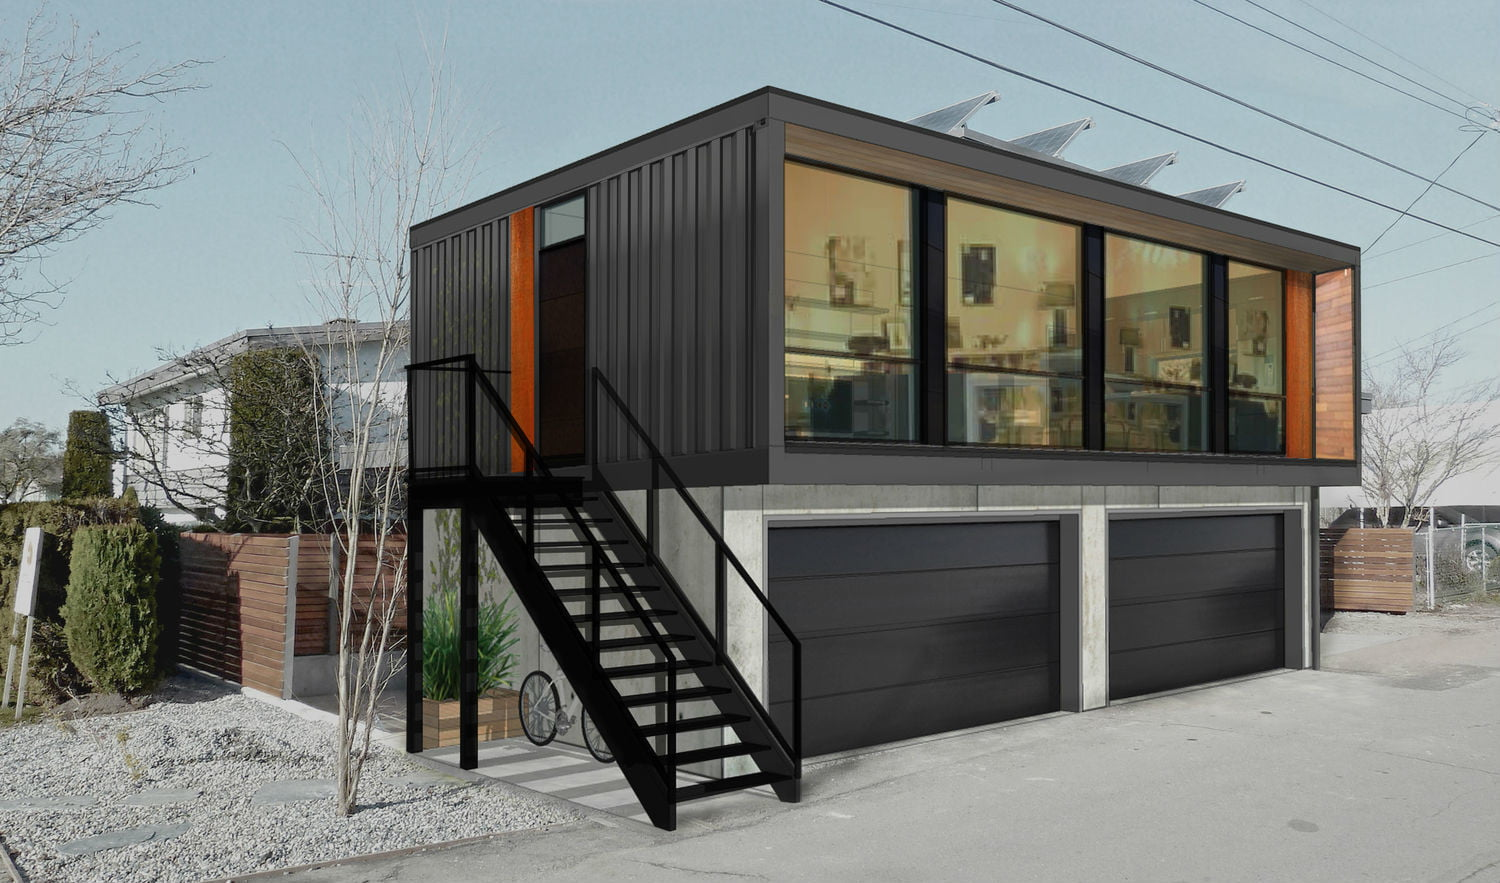 Honomobo Shipping Container Homes Are Stackable and Luxurious | Digital Trends & Honomobo Shipping Container Homes Are Stackable and Luxurious ...